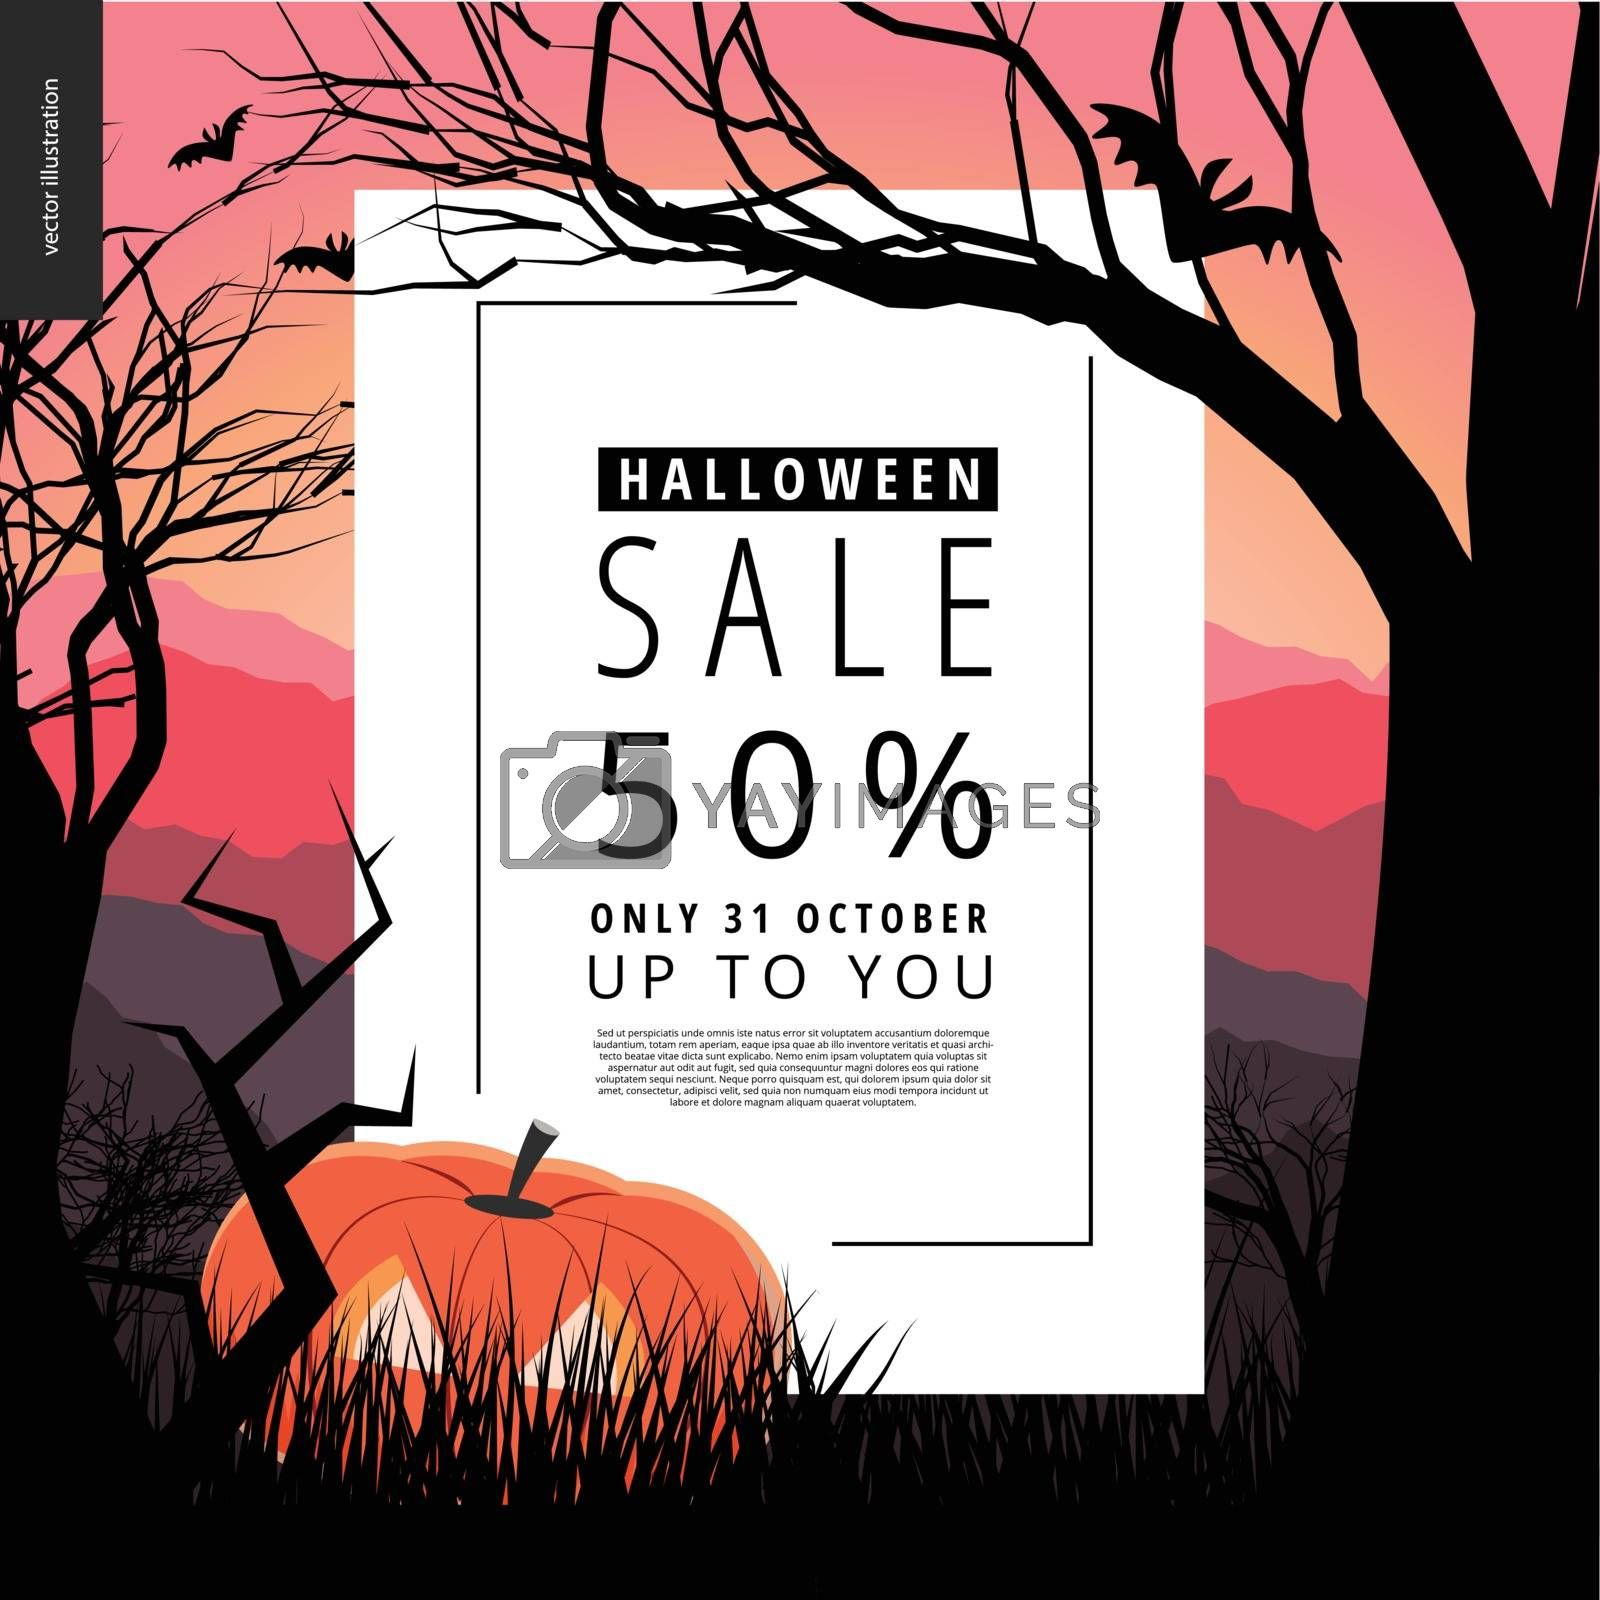 Halloween Sale notice illustrated poster. Vector cartoon illustration of a forest landscape with a pumpkin and flying bats, a black tree amd jack-o-lantern on foreground and sunset lighted hills.